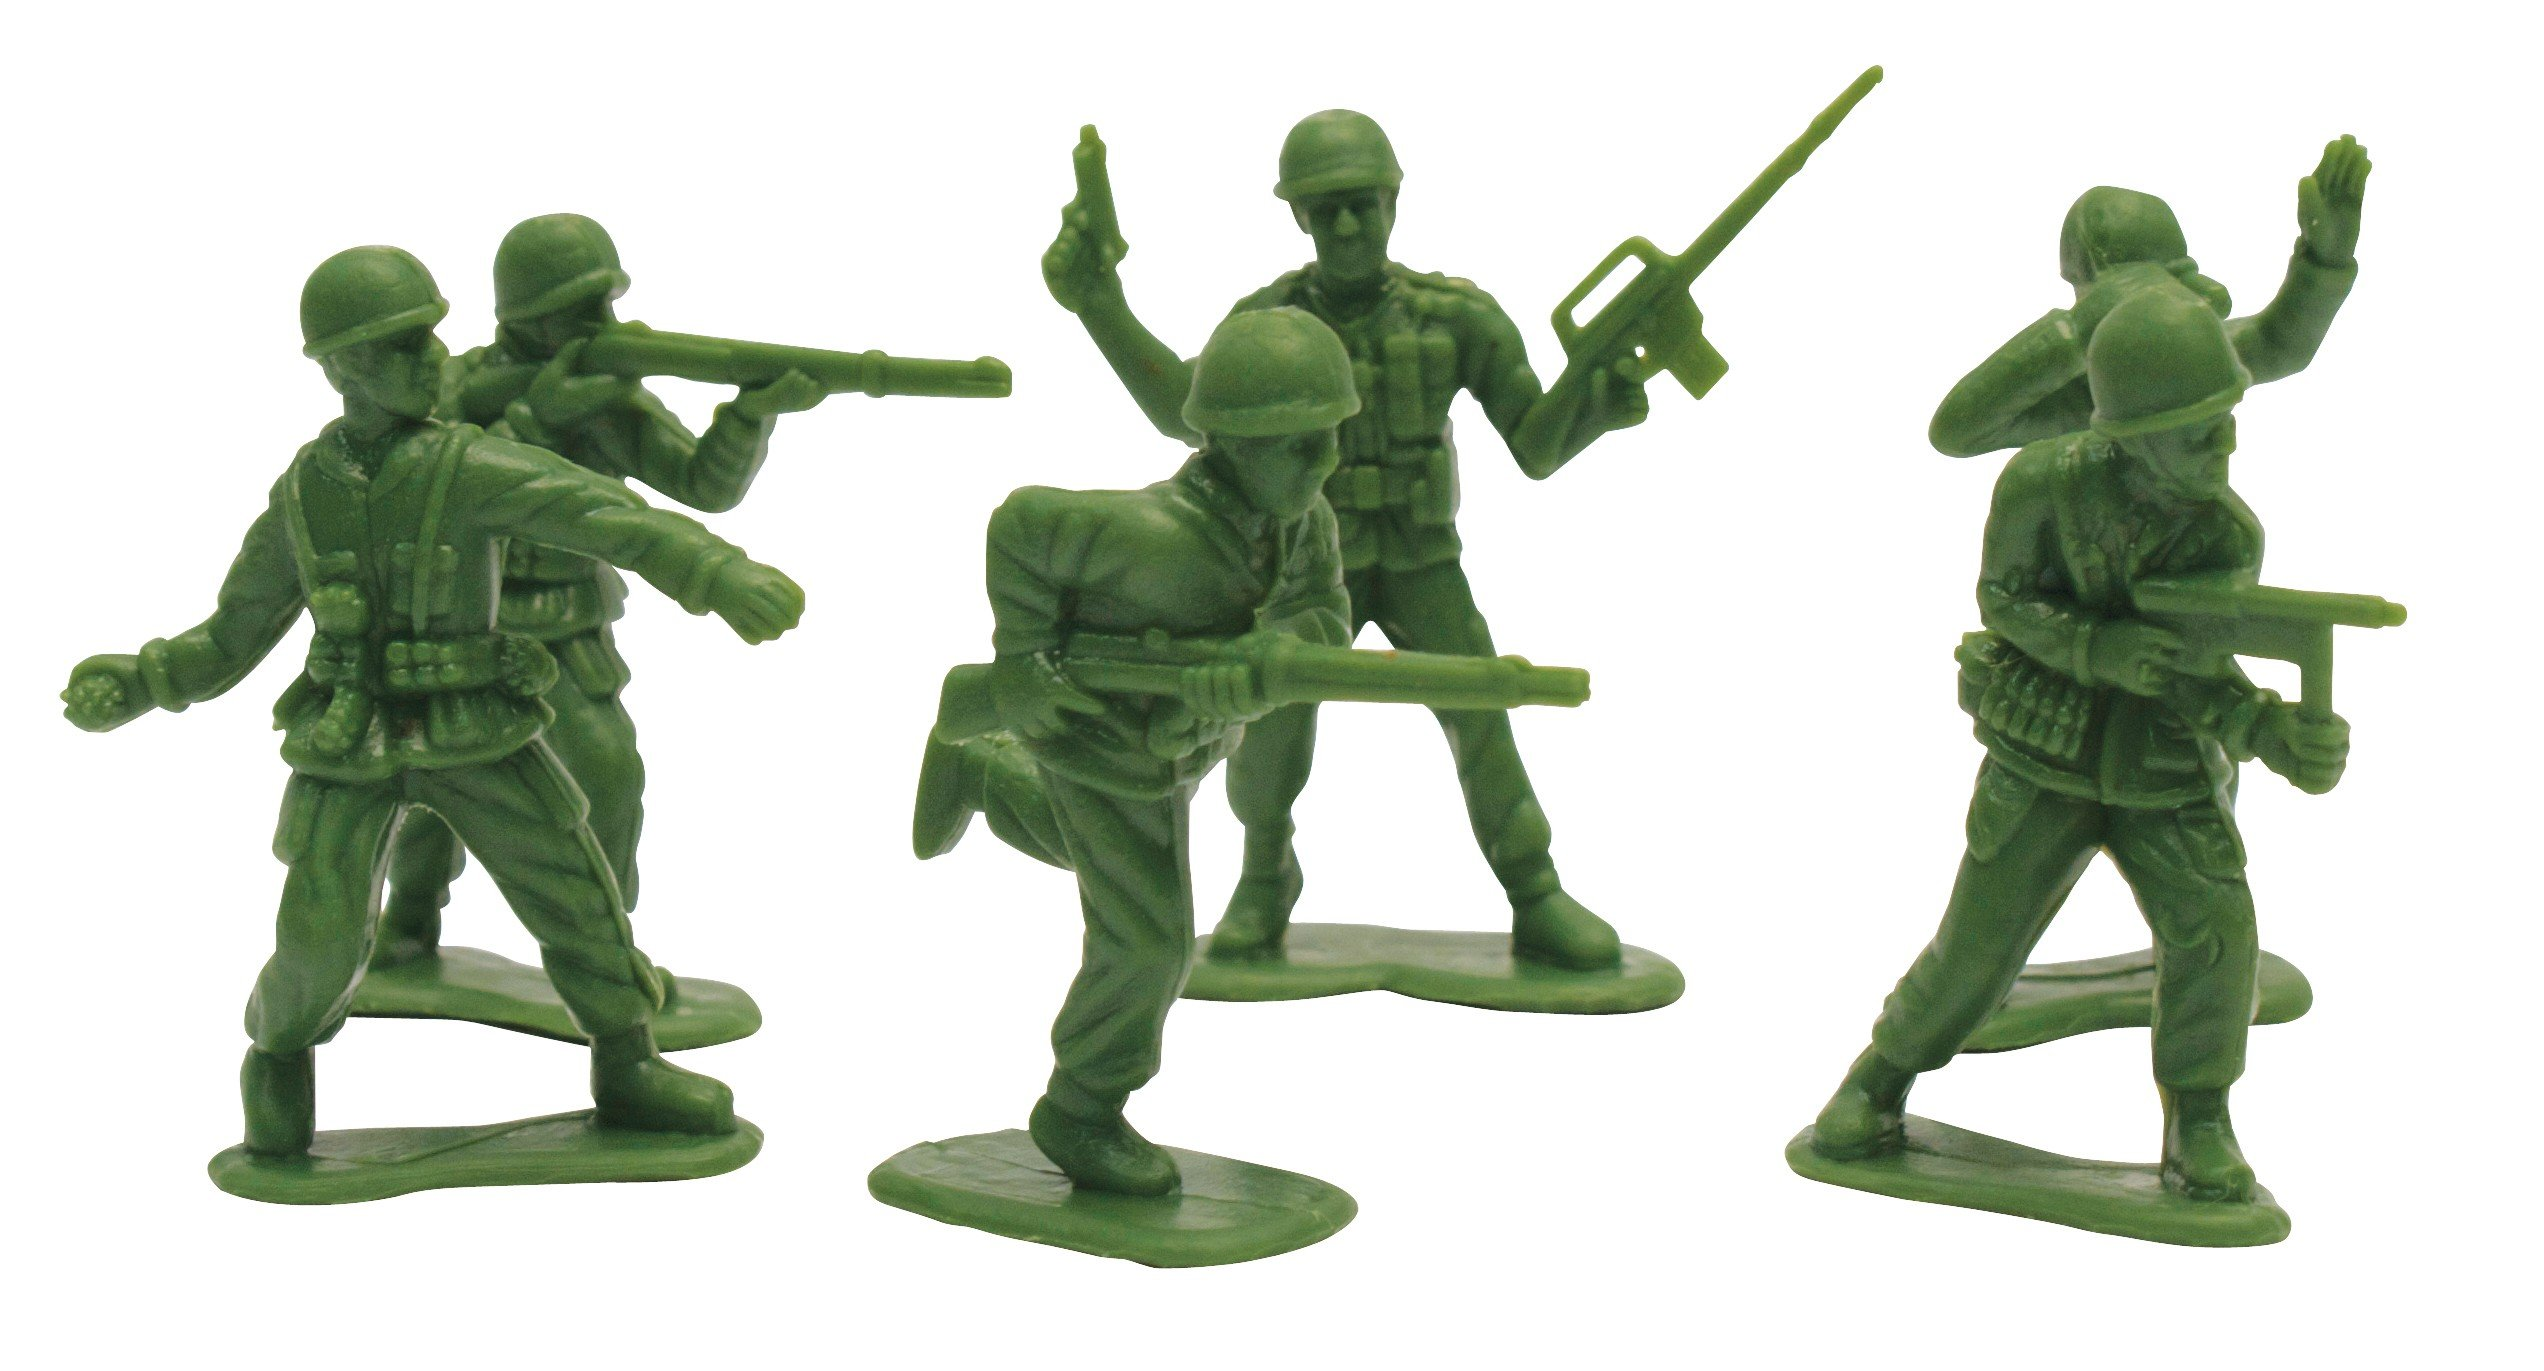 Army clipart small army. Free military toys cliparts